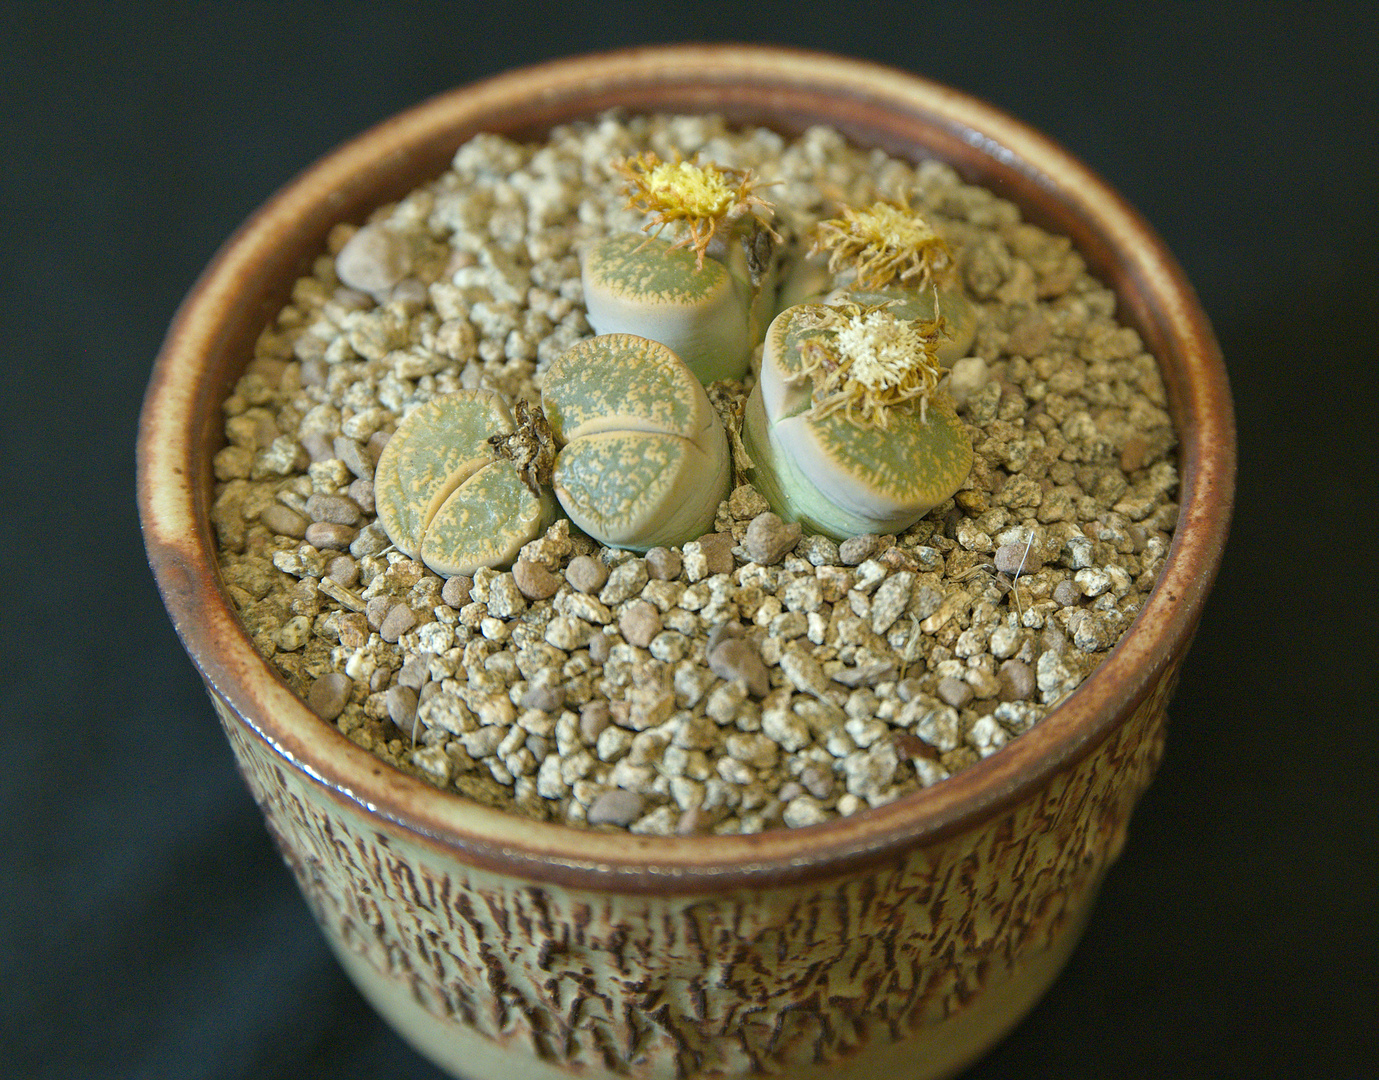 SCCSS 2017 October - Winner Open Succulent - Maria Capaldo - Lithops